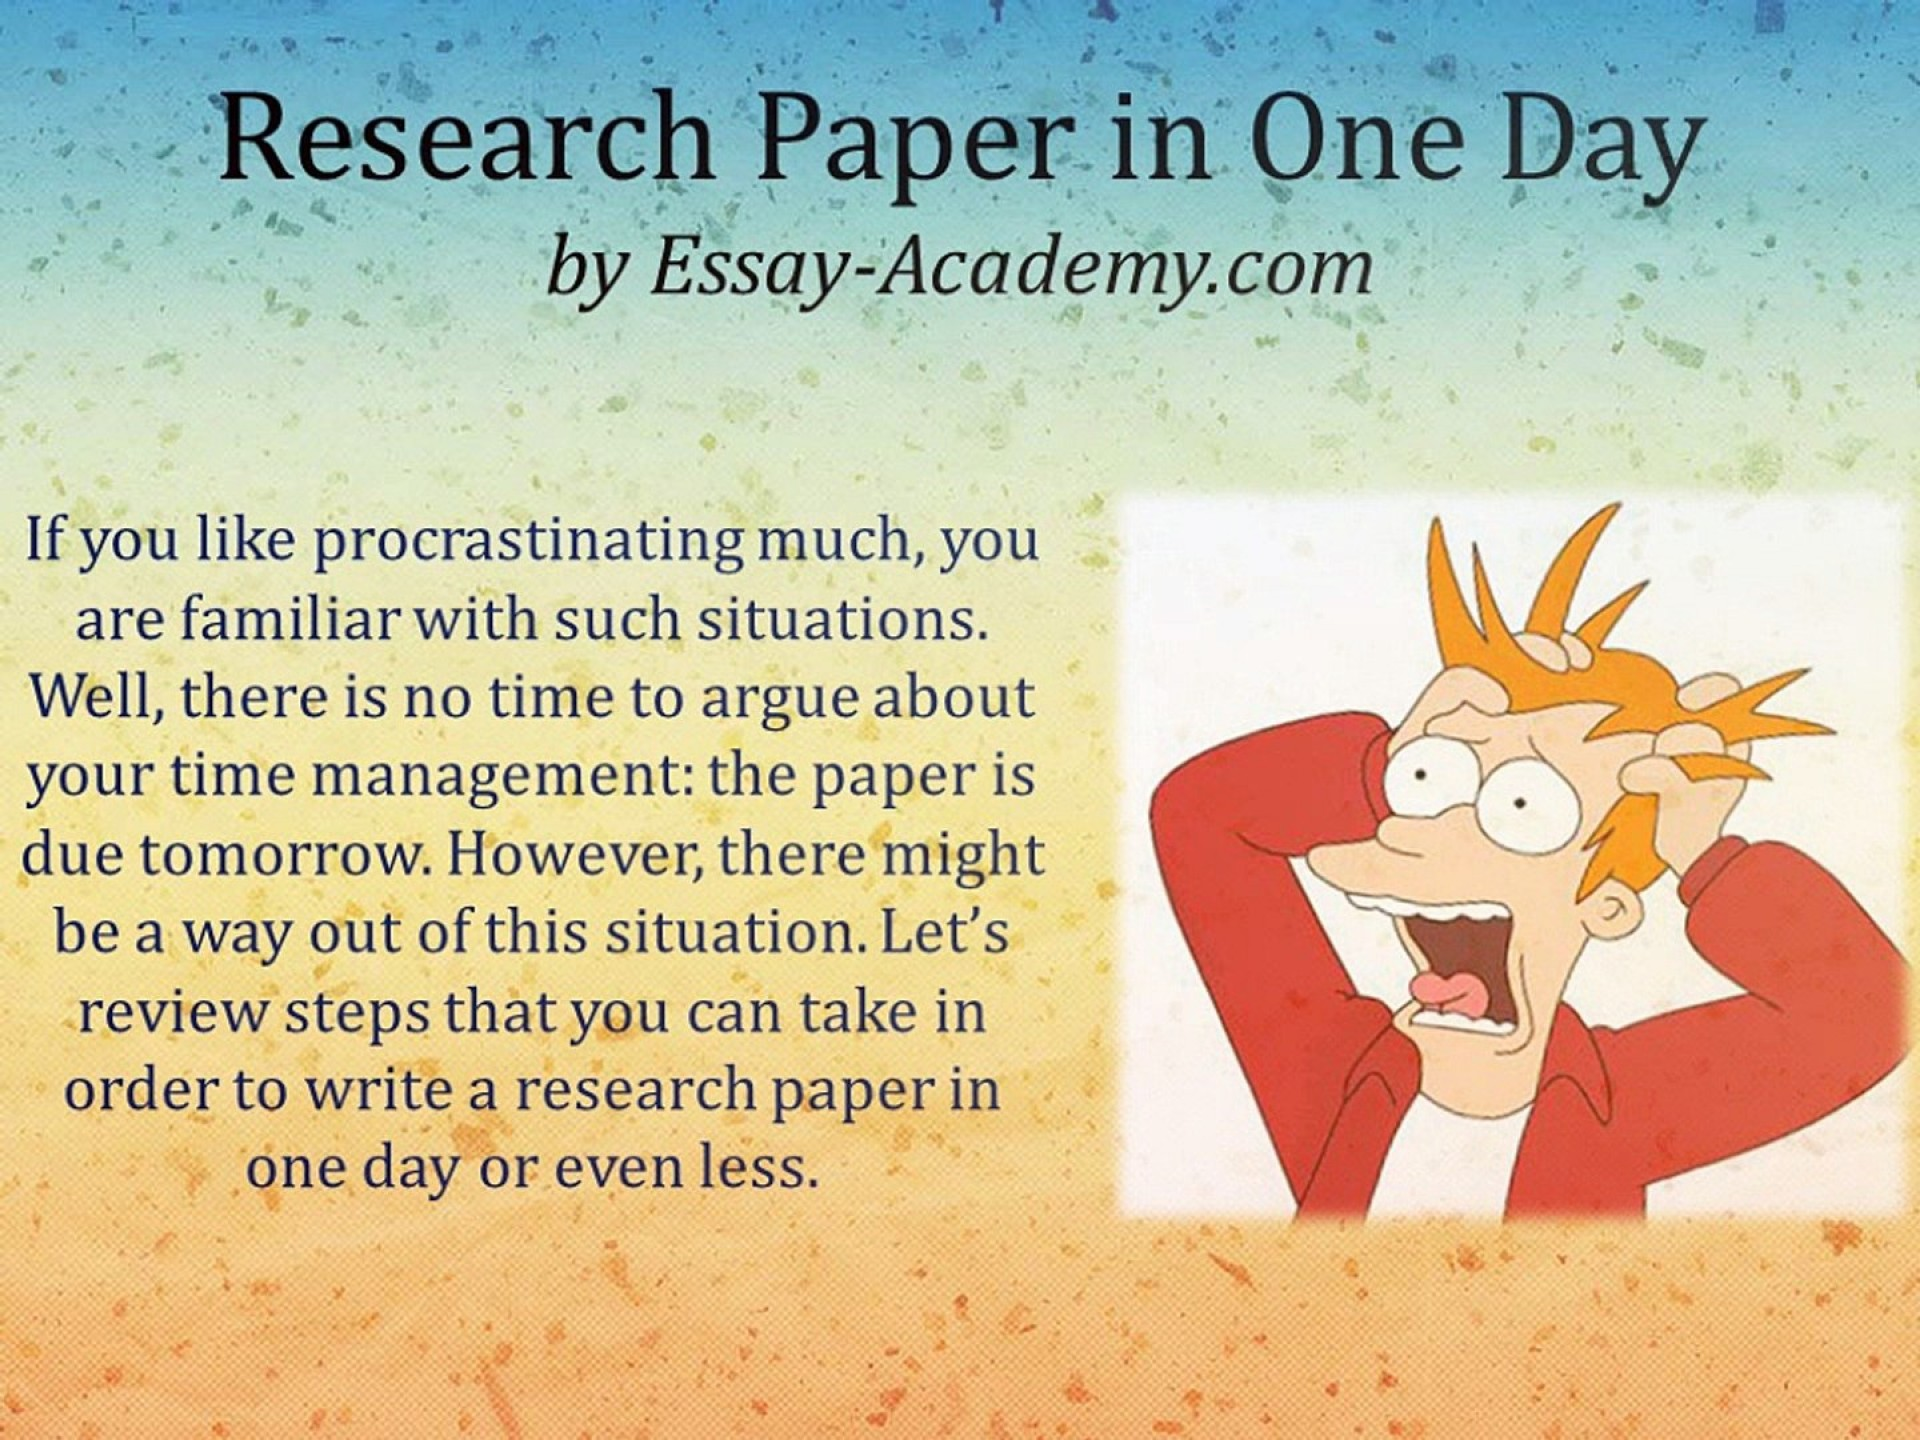 016 Can I Write Research Paper In One Day X1080 Fascinating A 6 Page 1920